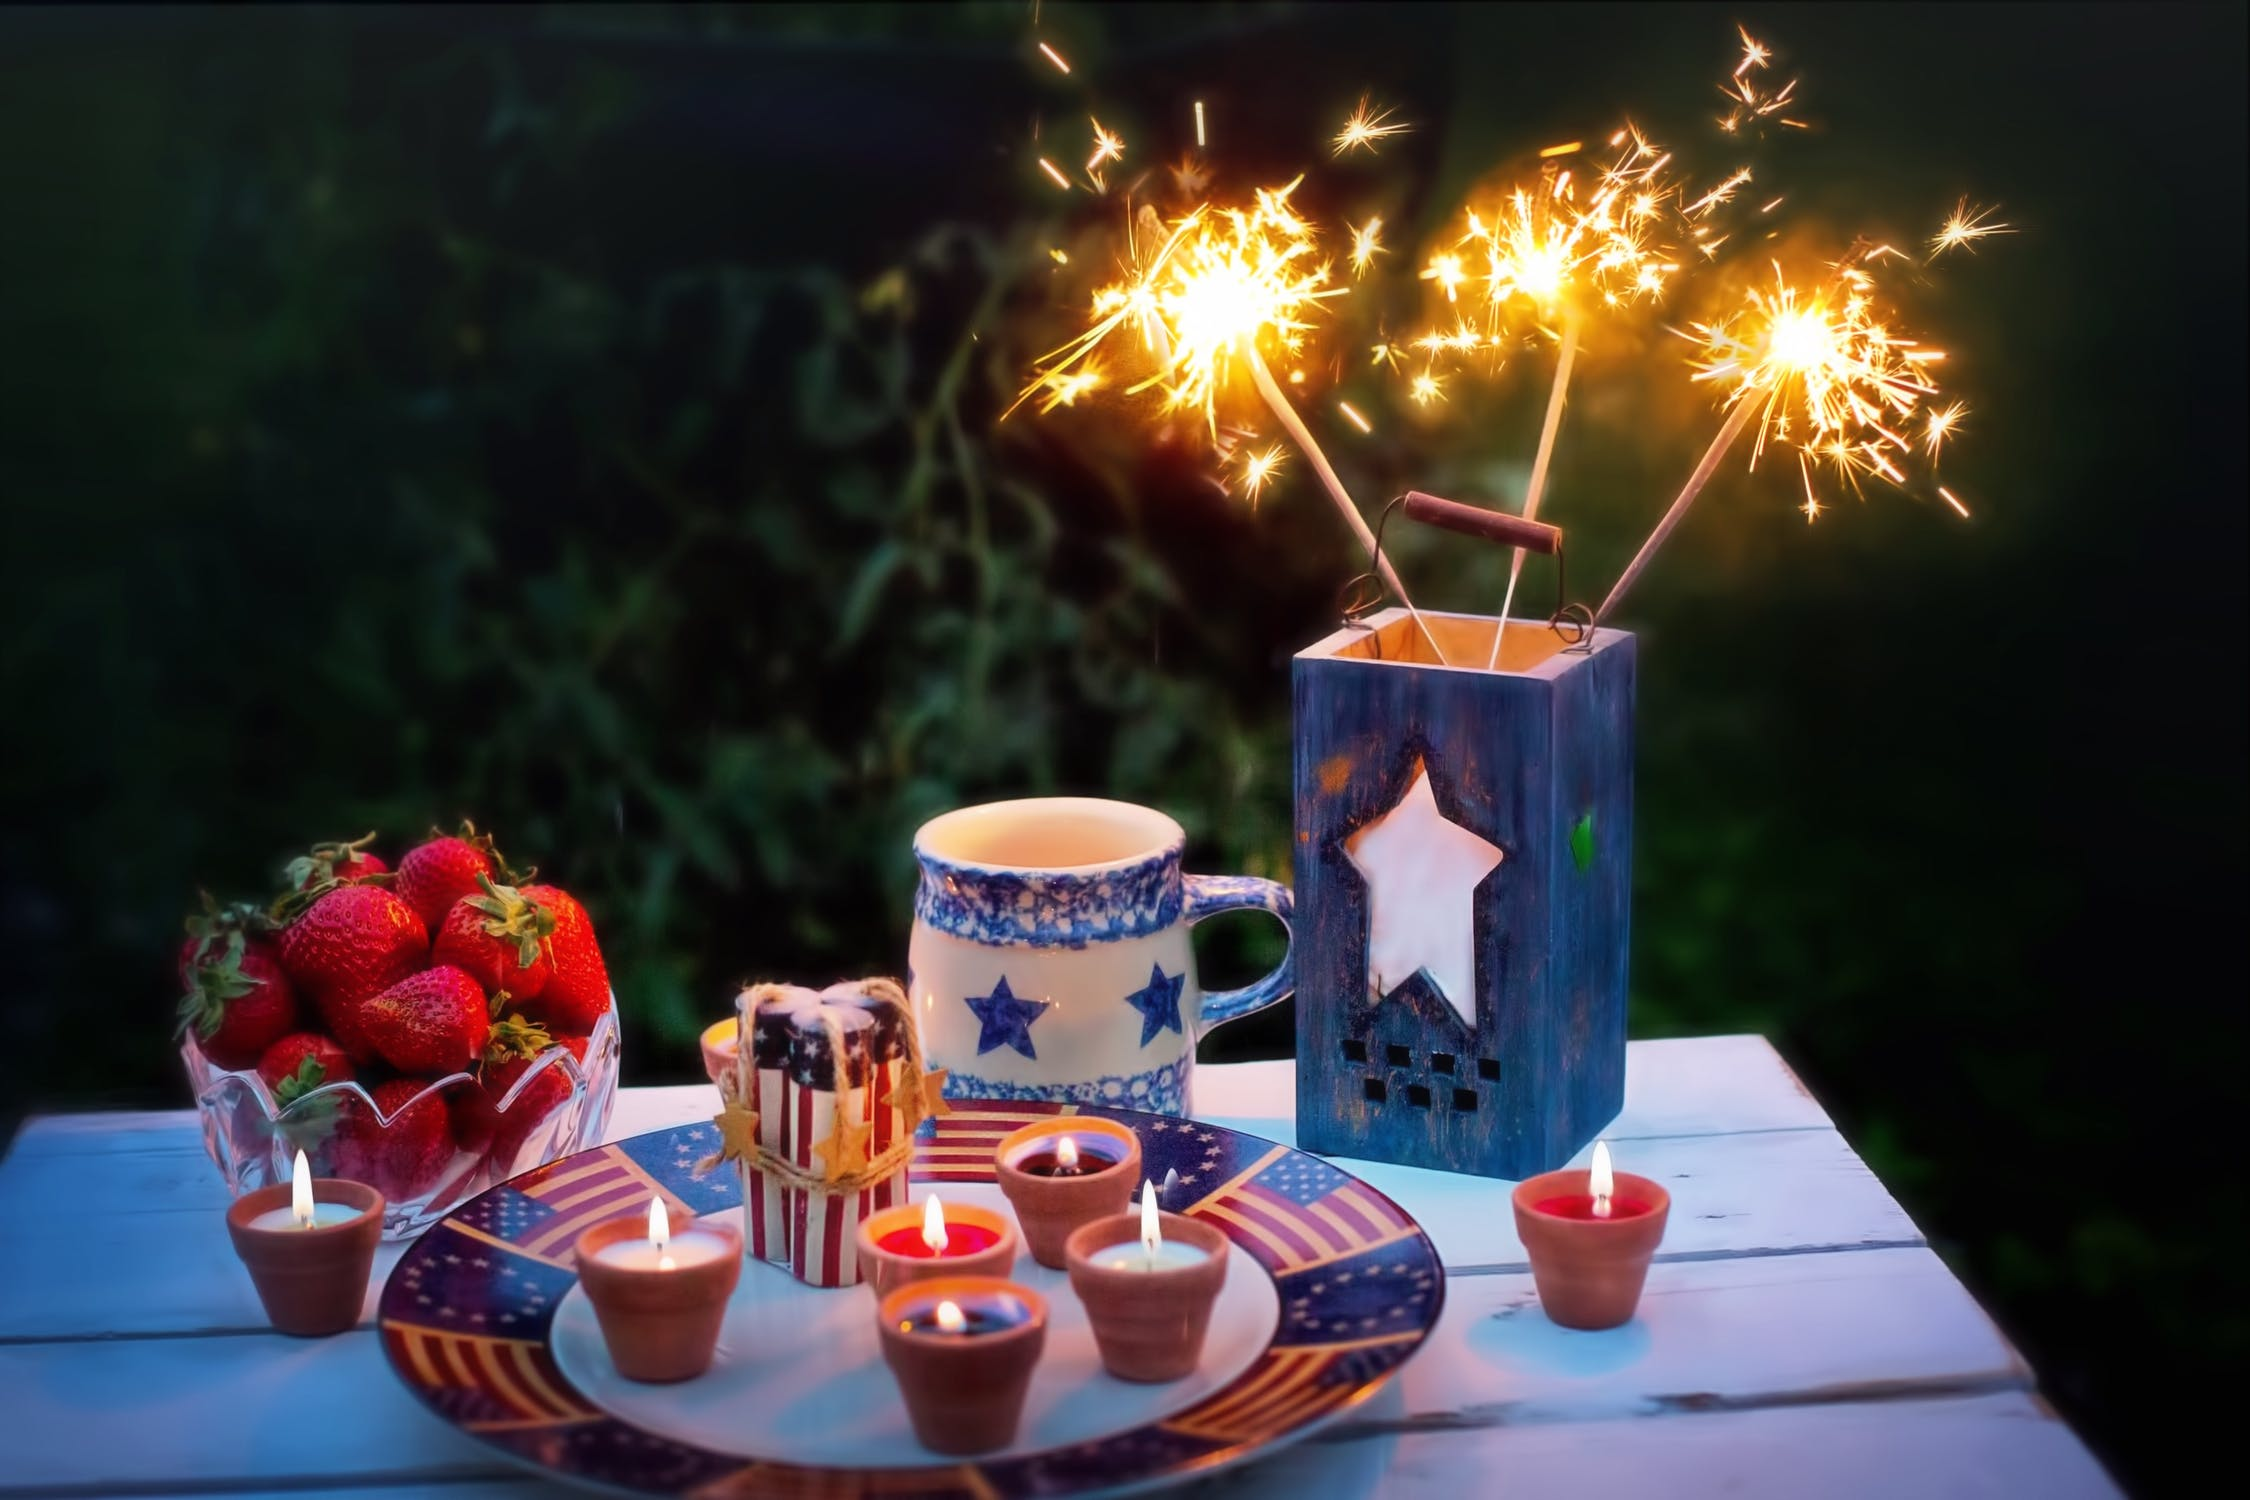 Sparklers, strawberries, and July 4th decorations